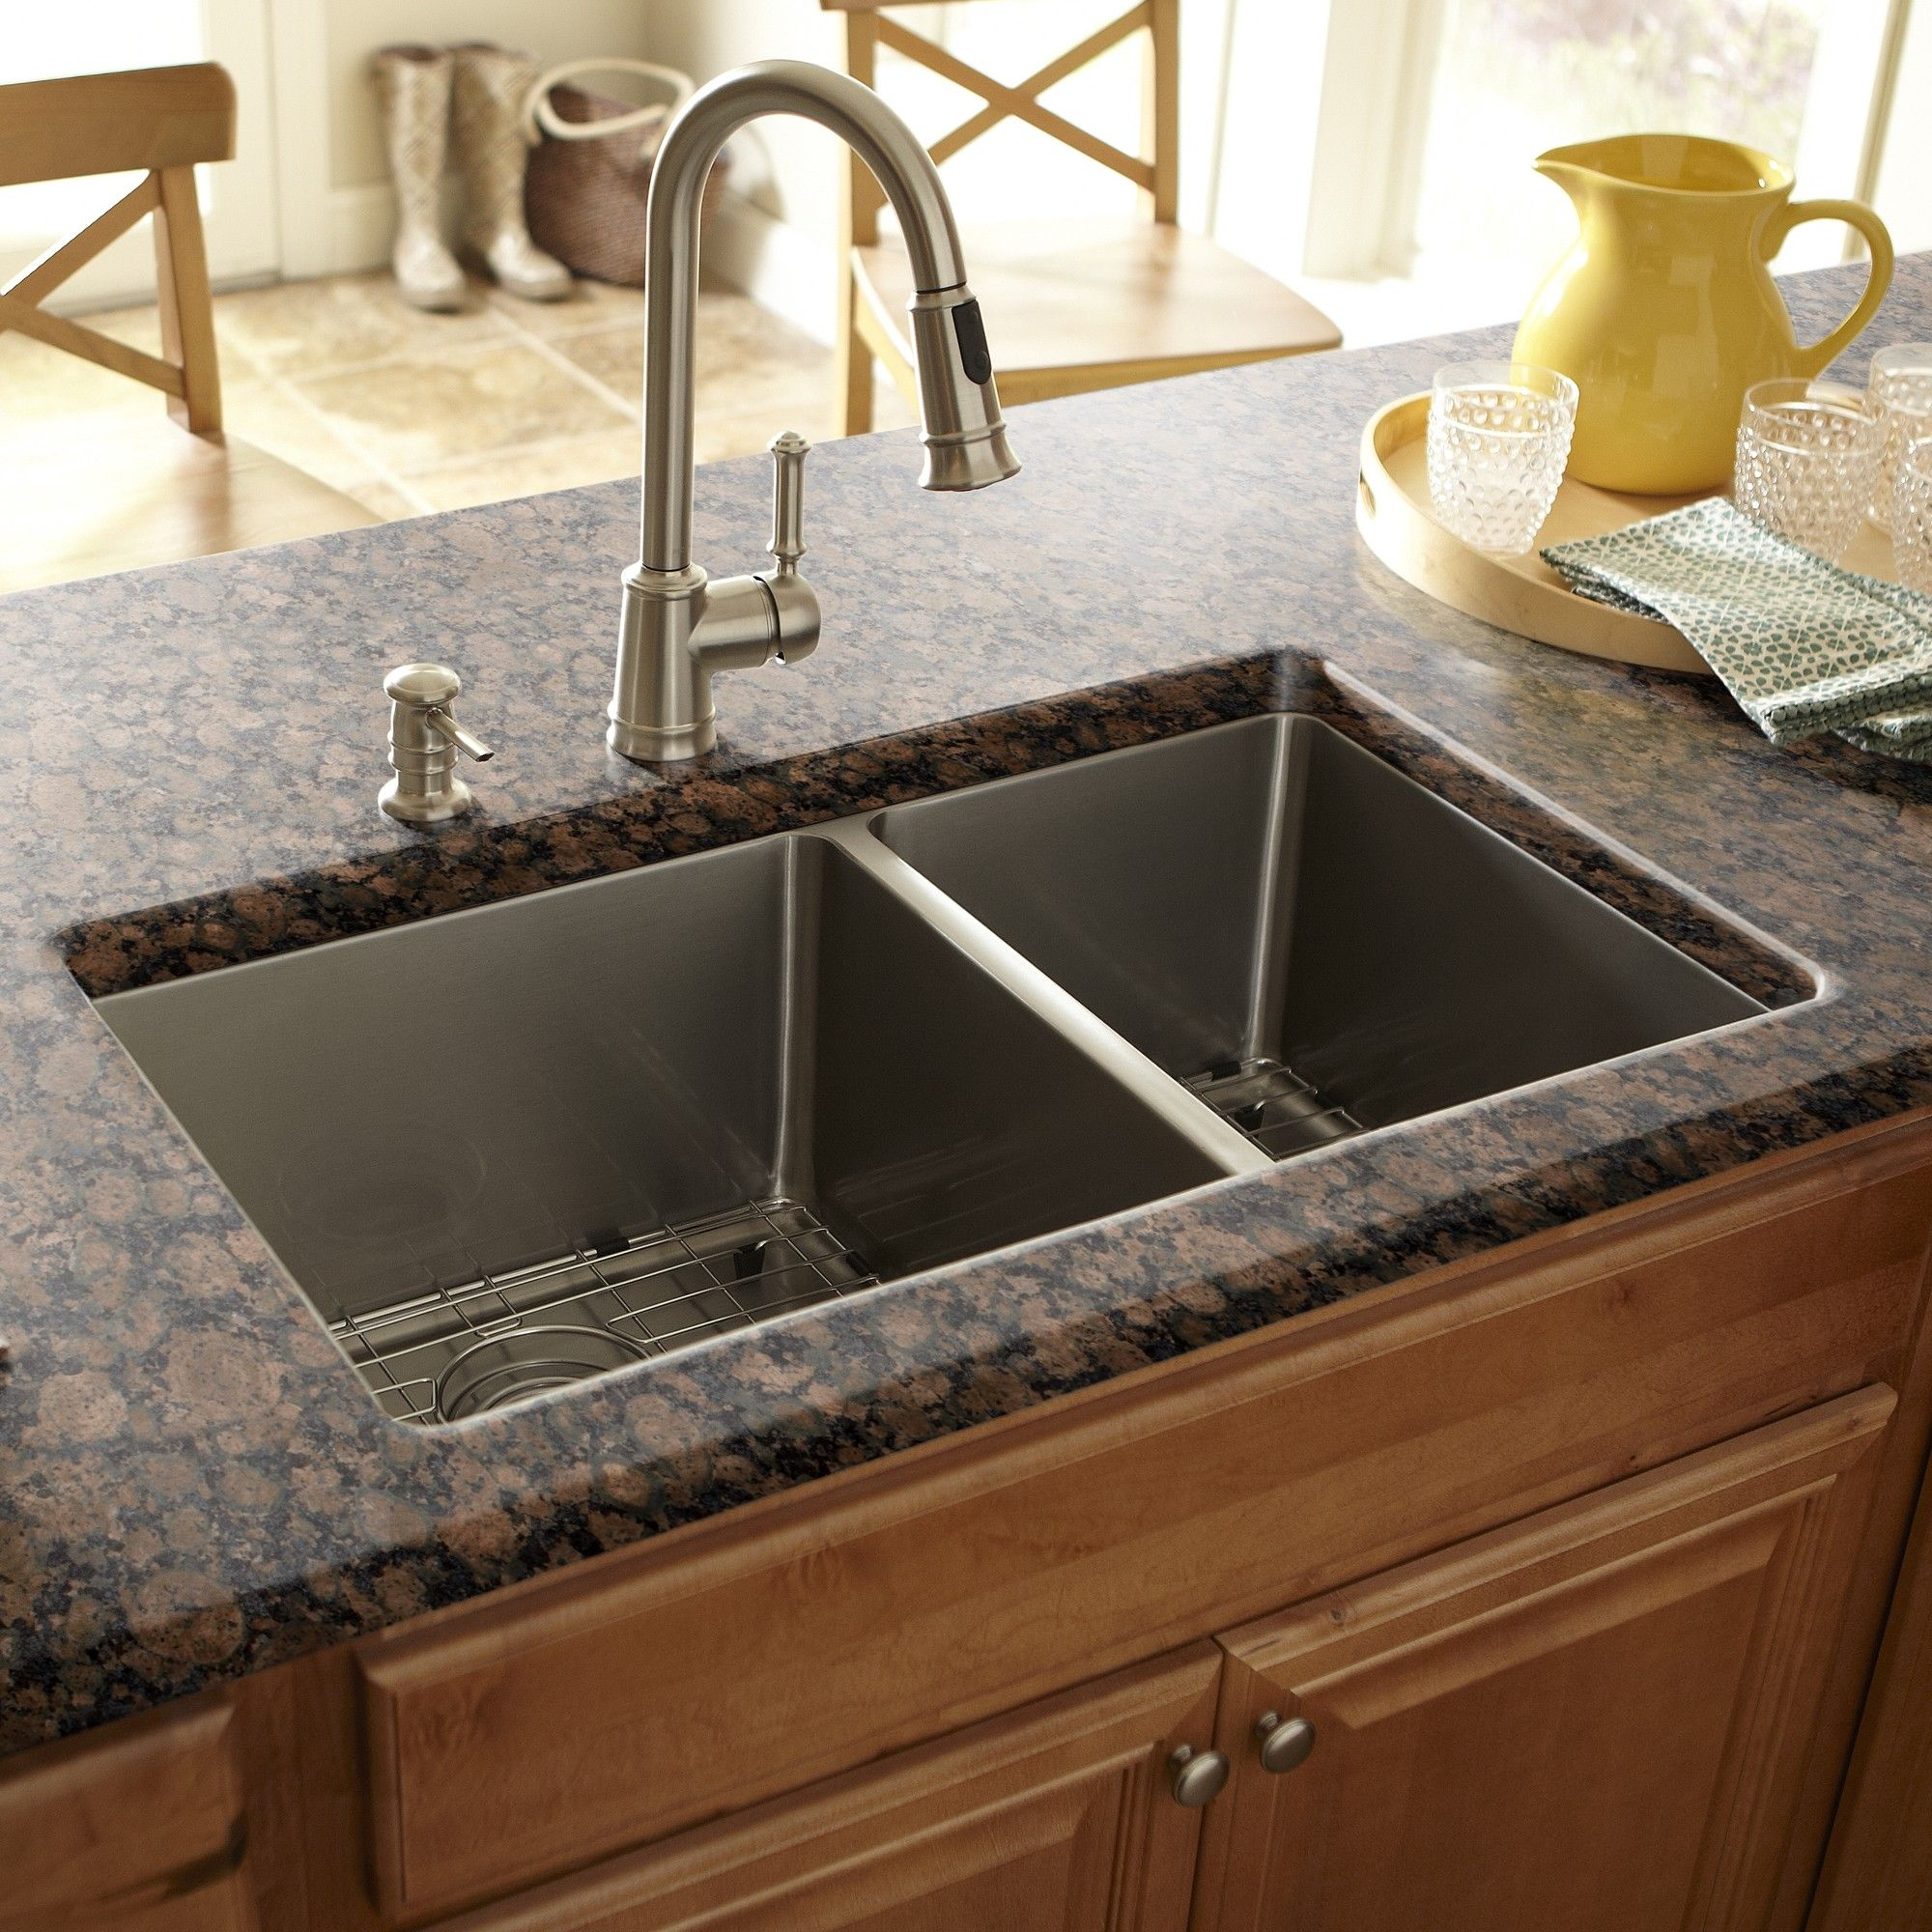 Schon Double Basin Stainless Steel Undermount Kitchen Sink With Split    Includes Sink Racks And Basket Strainers